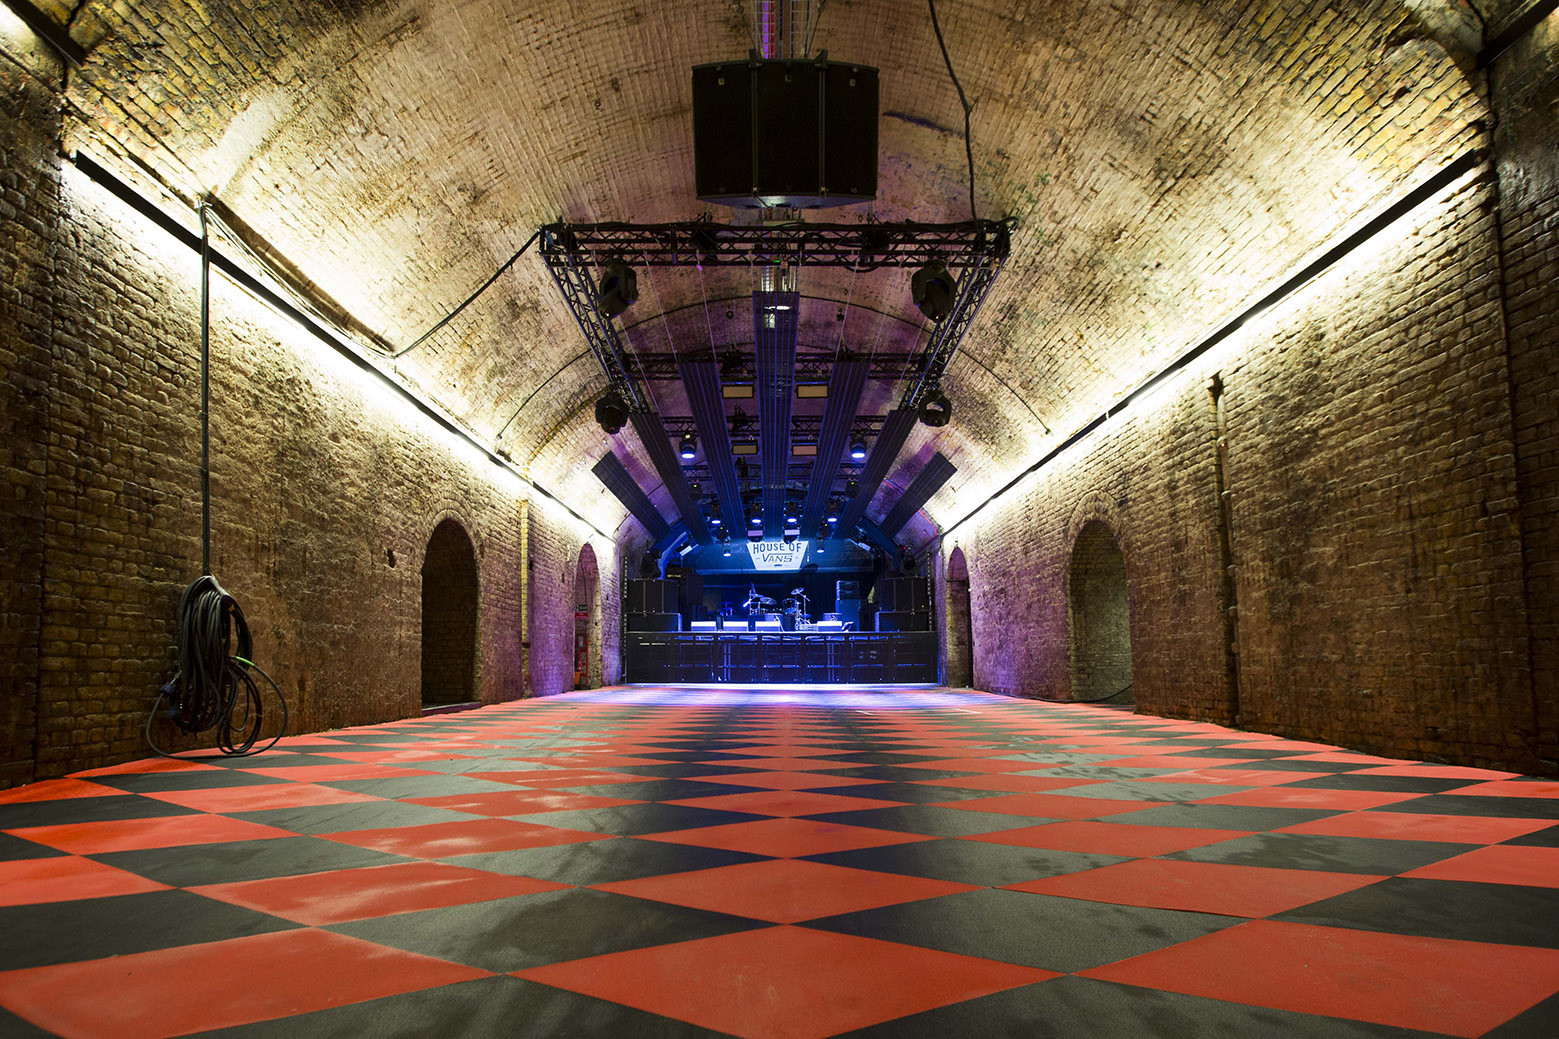 House_of_Vans_London_Music_Tunnel_(1).jpg